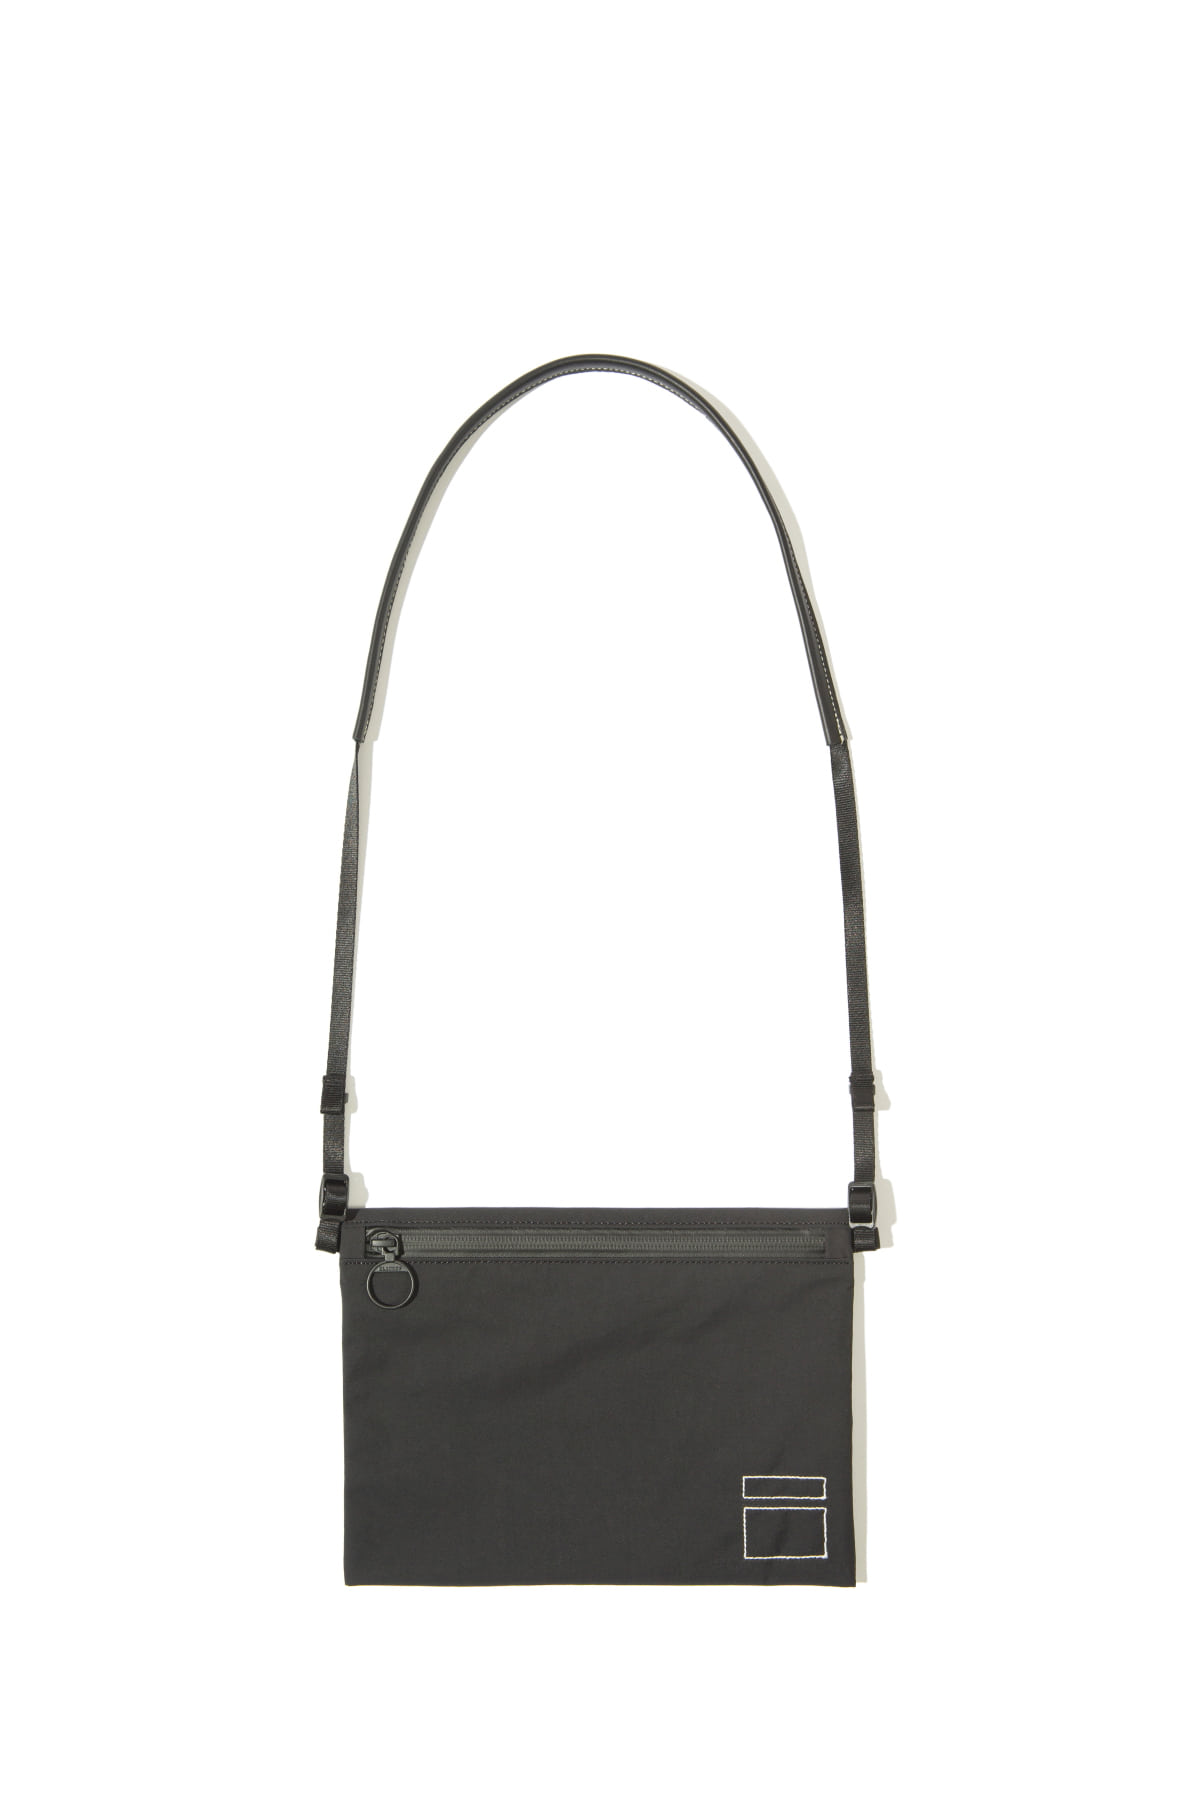 Blankof : BLG 01 12IN Sacoche Bag 12 (Black)